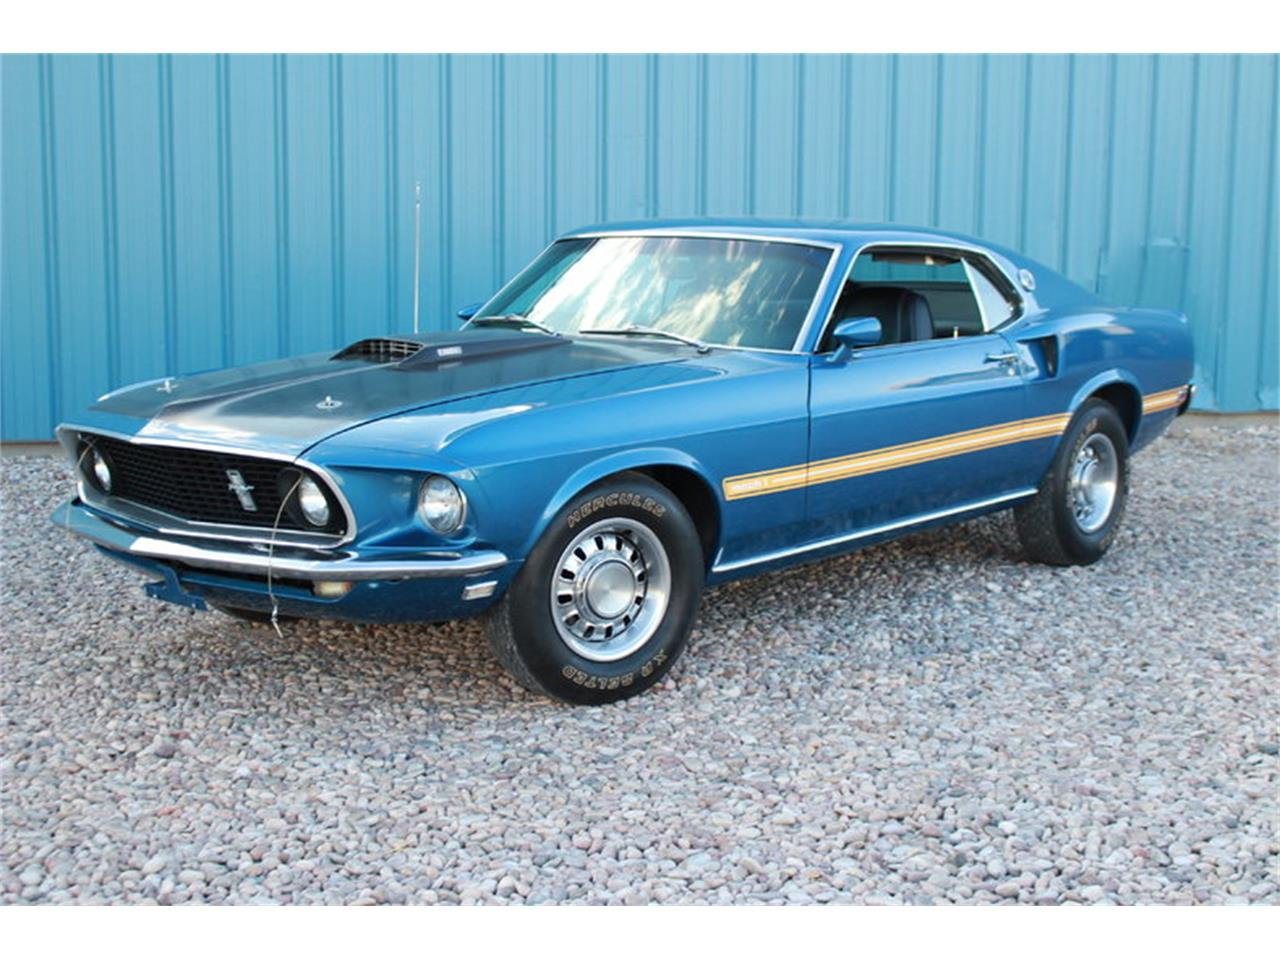 Large Picture of Classic '69 Ford Mustang located in Utah - $34,900.00 - LDCX